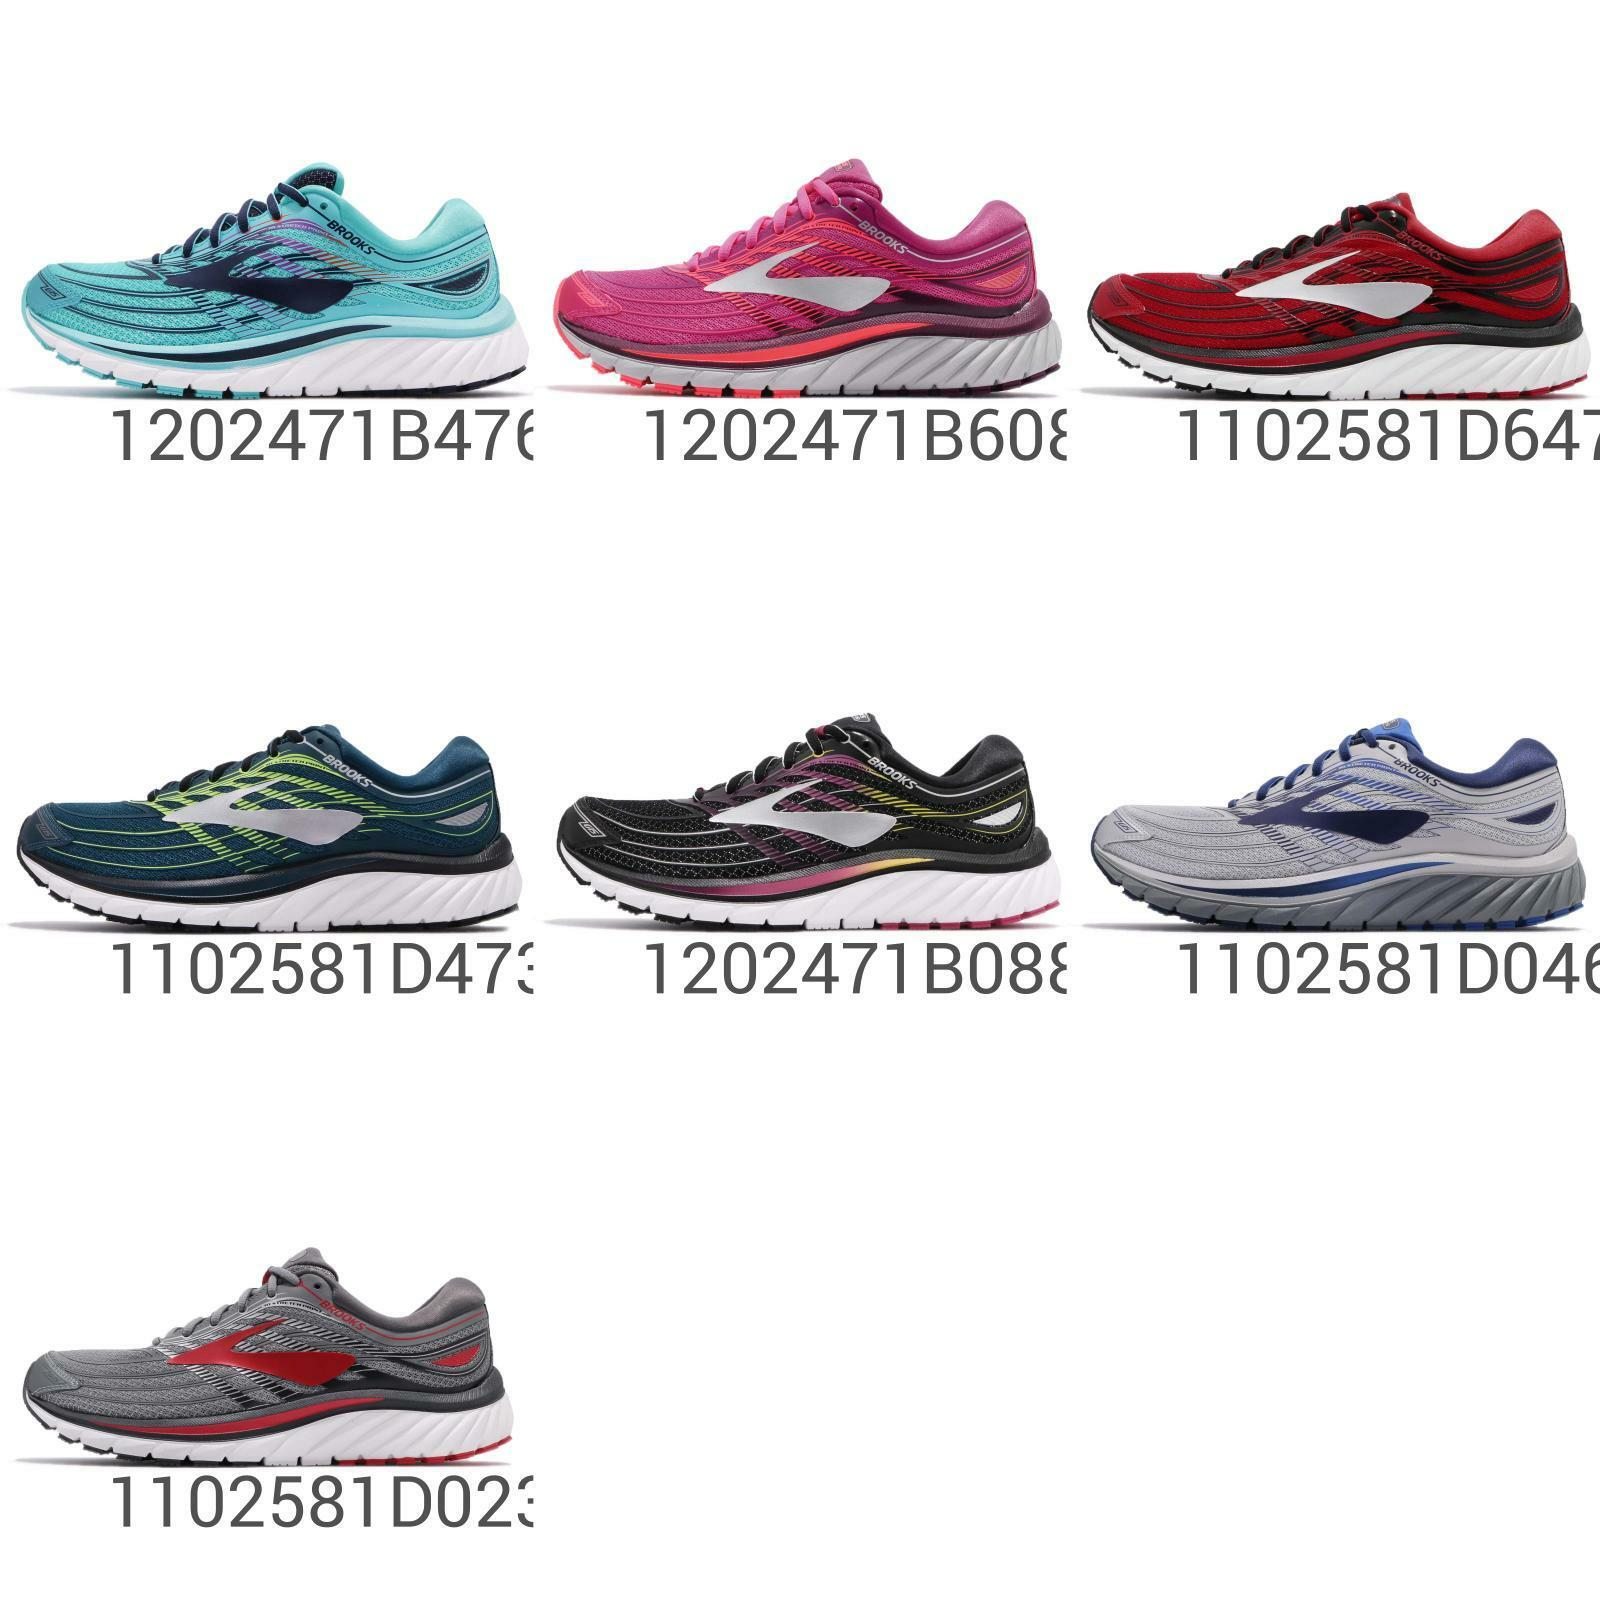 Brooks Glycerin 15 Desiree Linden Men donna Neutral Cushion correrening sautope Pick 1 Sautope classeiche da uomo